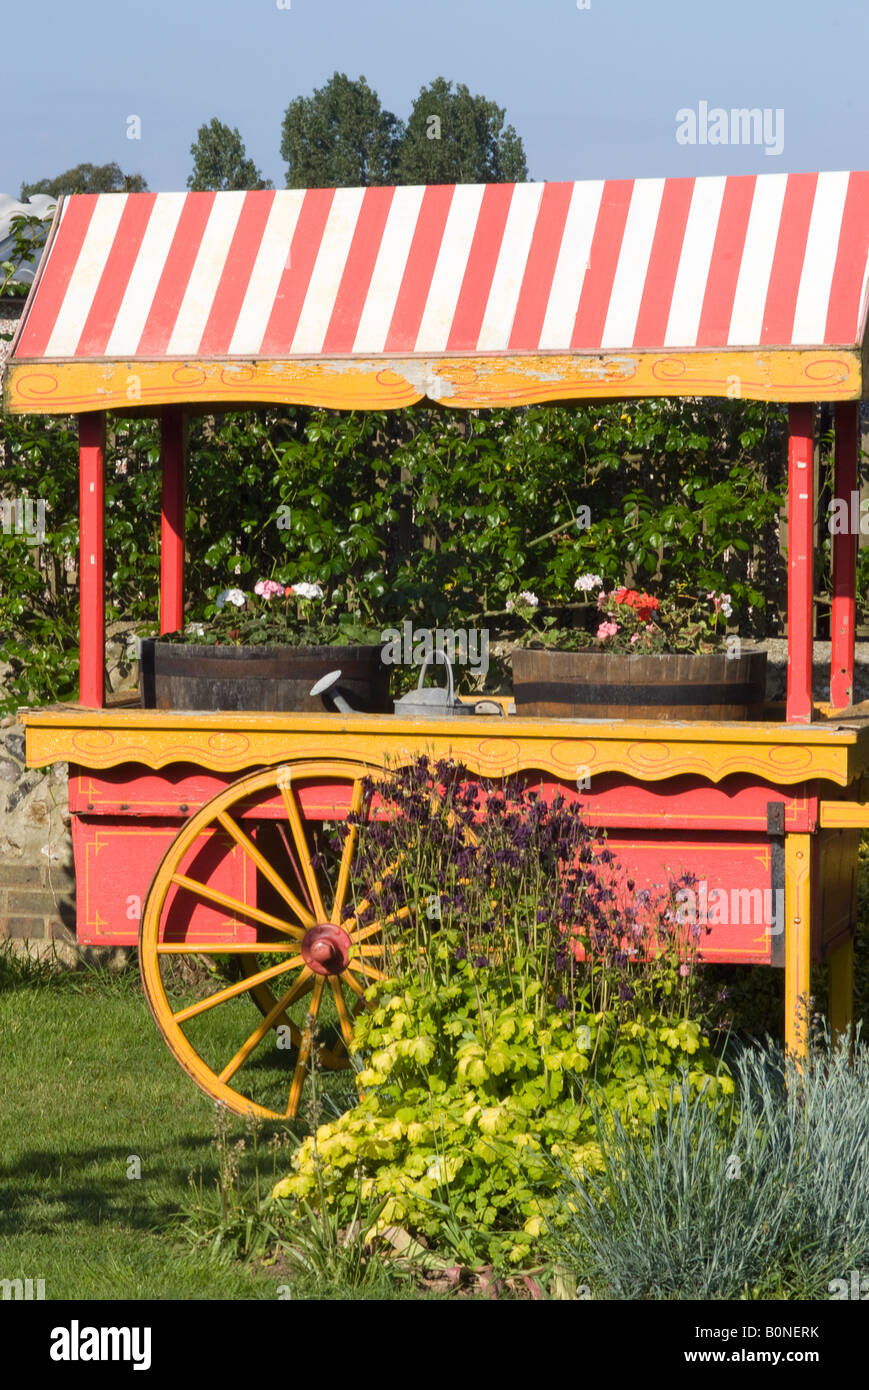 Covered Garden Cart With Red and White Striped Awning and ...